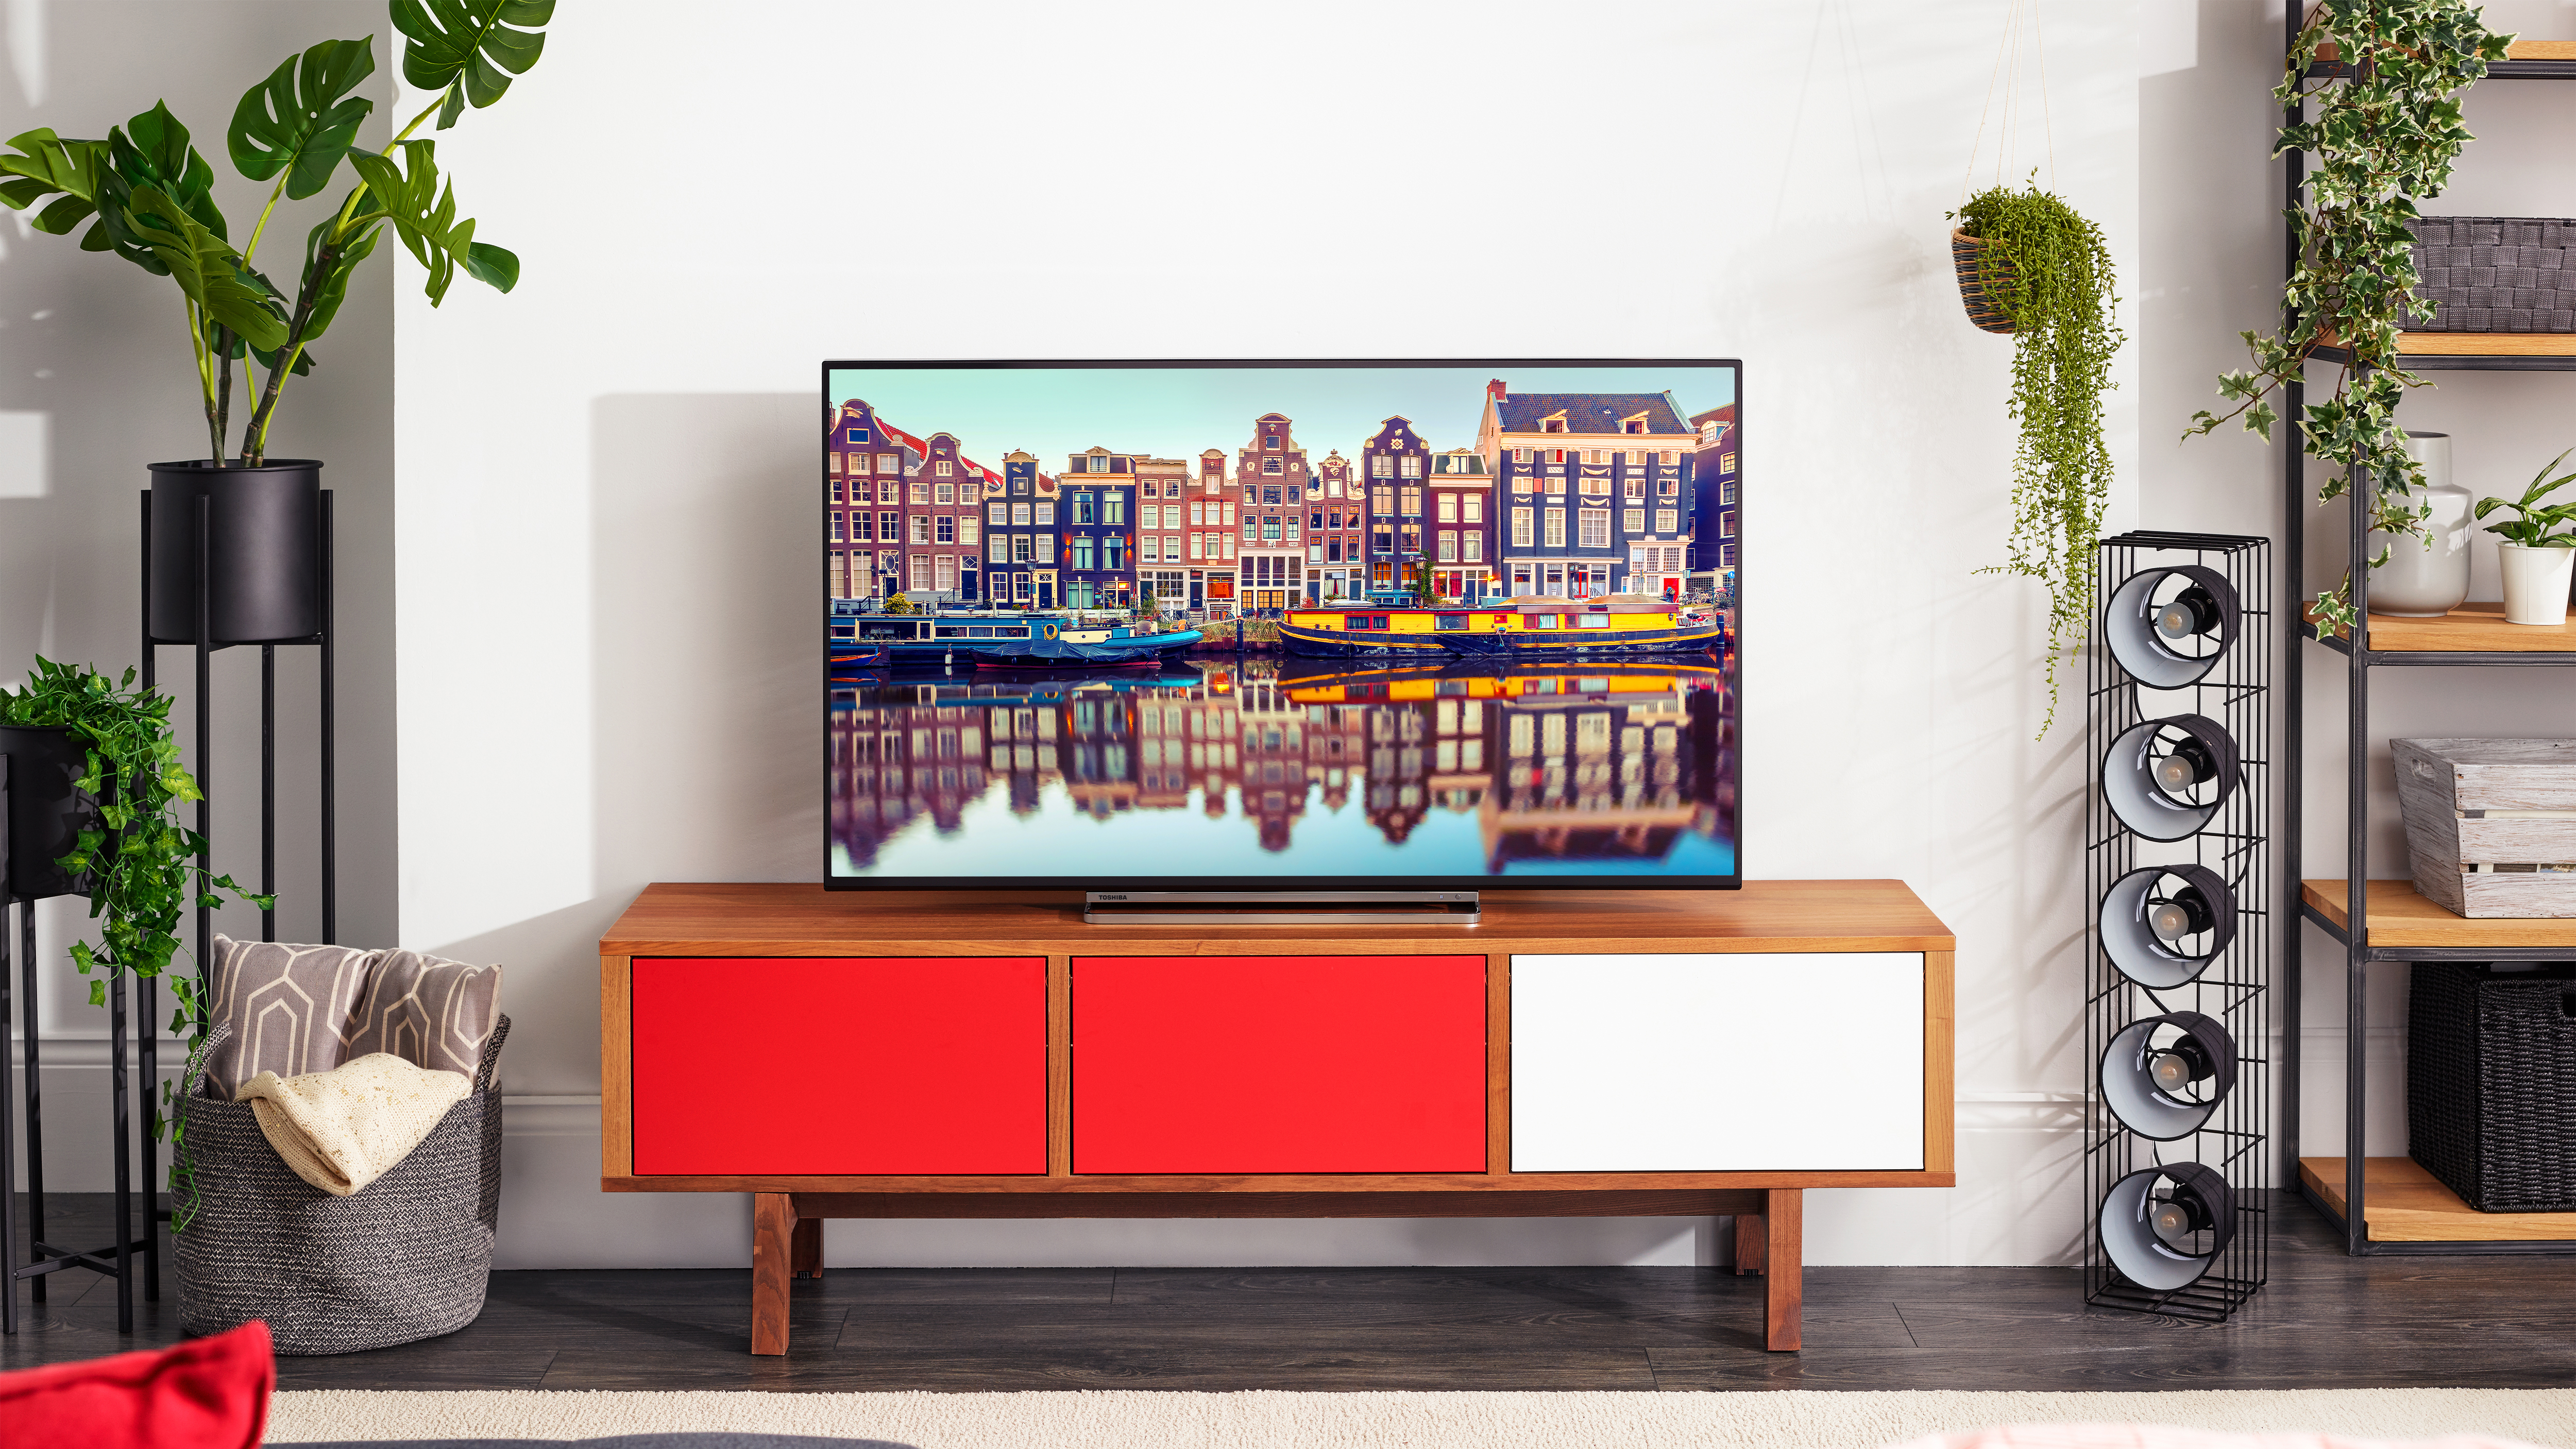 Best 32-inch TVs 2019: the best small TVs for any budget